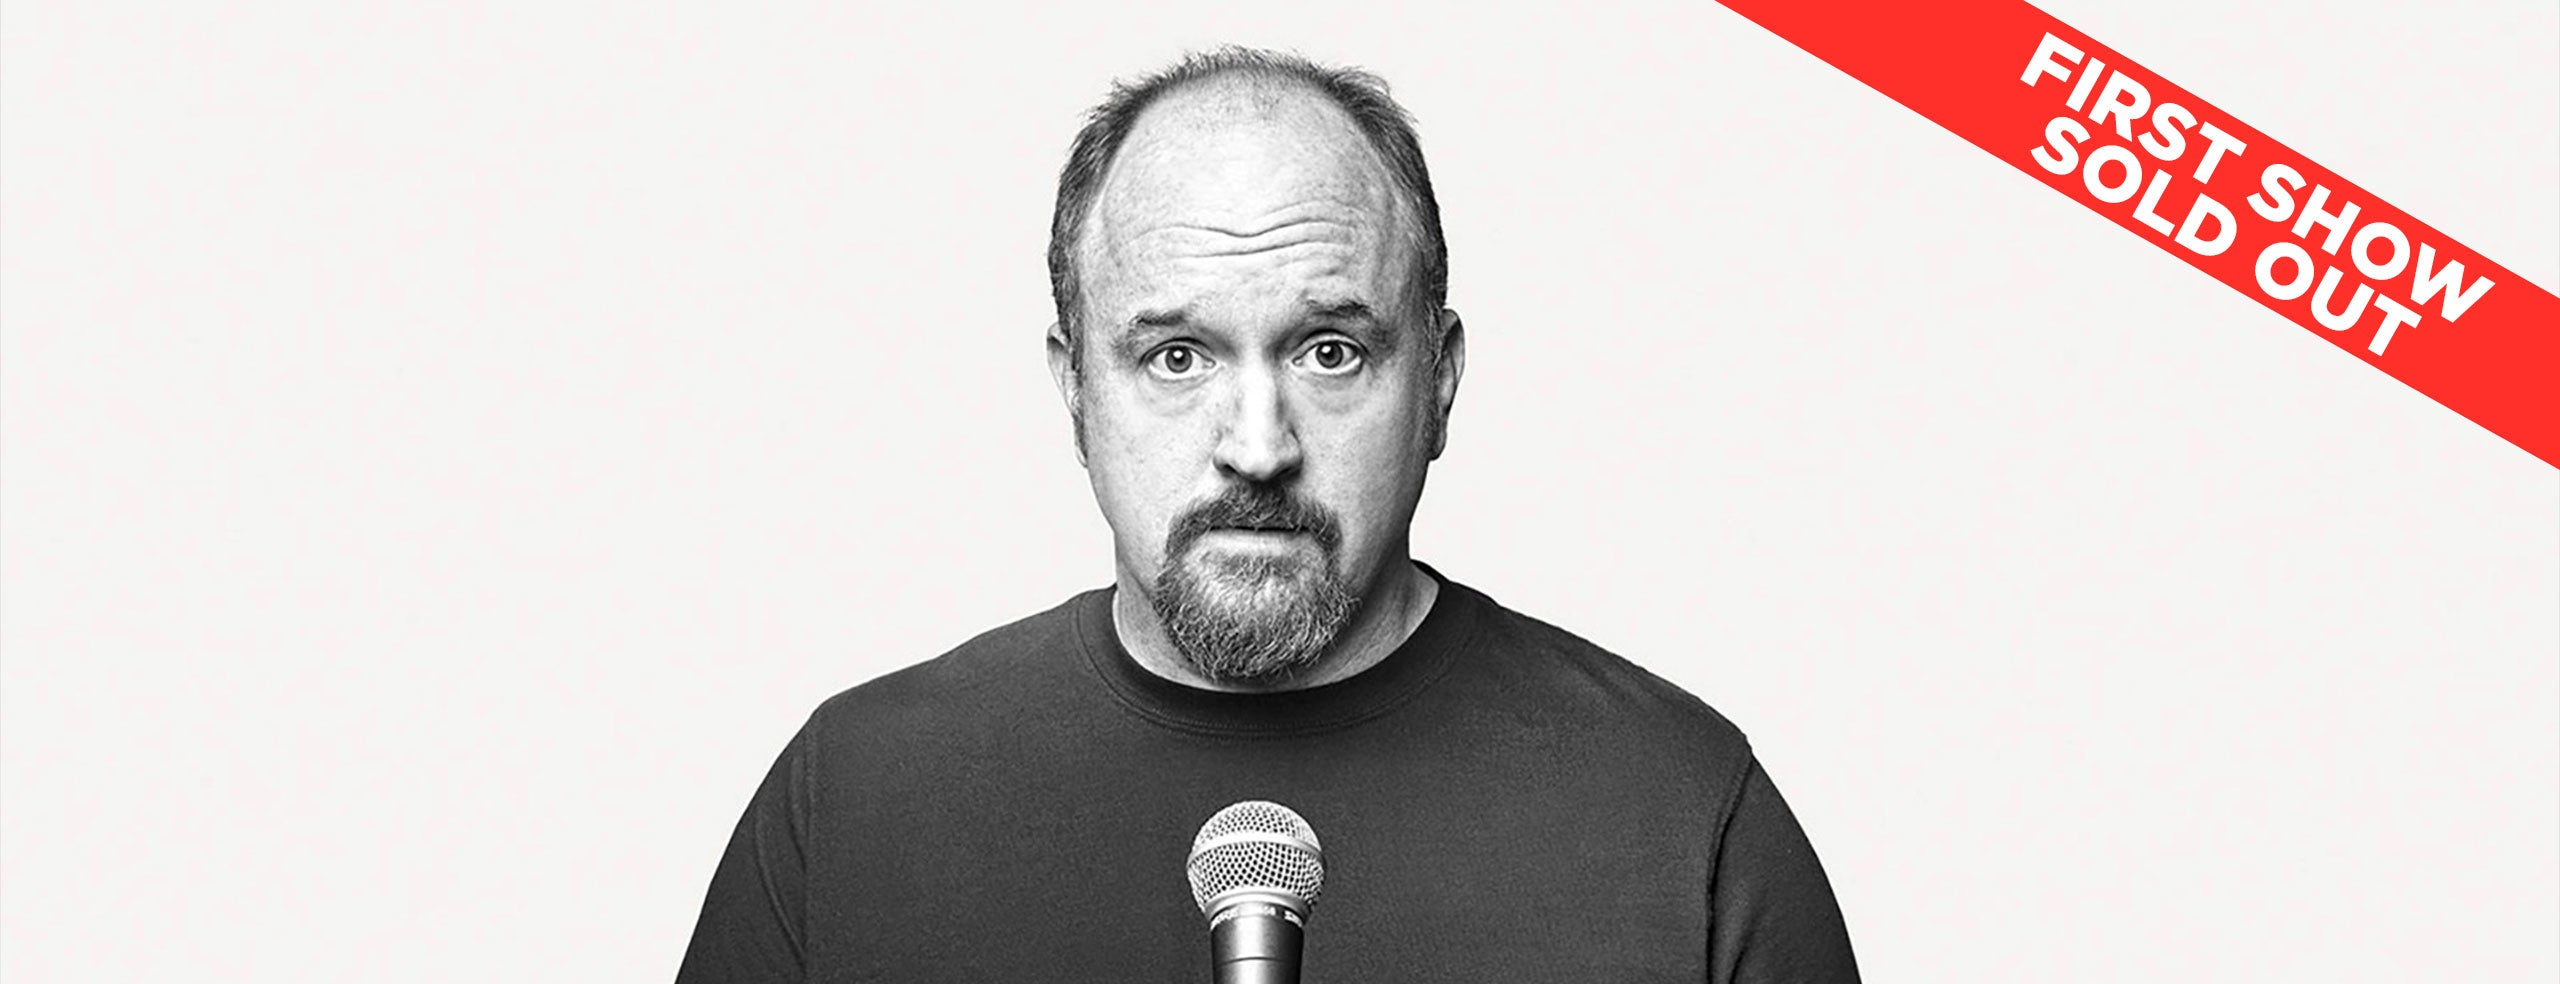 2560x984---Slider-Big-Louis-CK.jpg